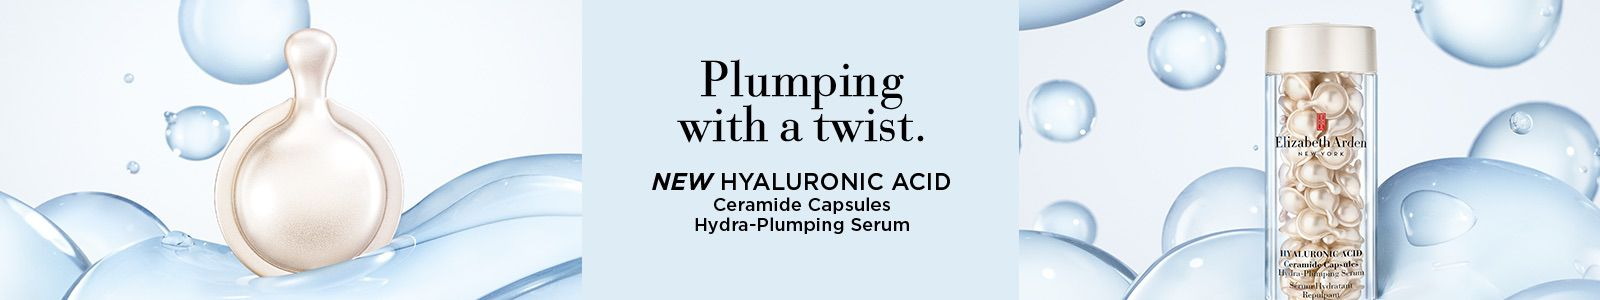 Plumping with a twist, New Hyaluronic Acid